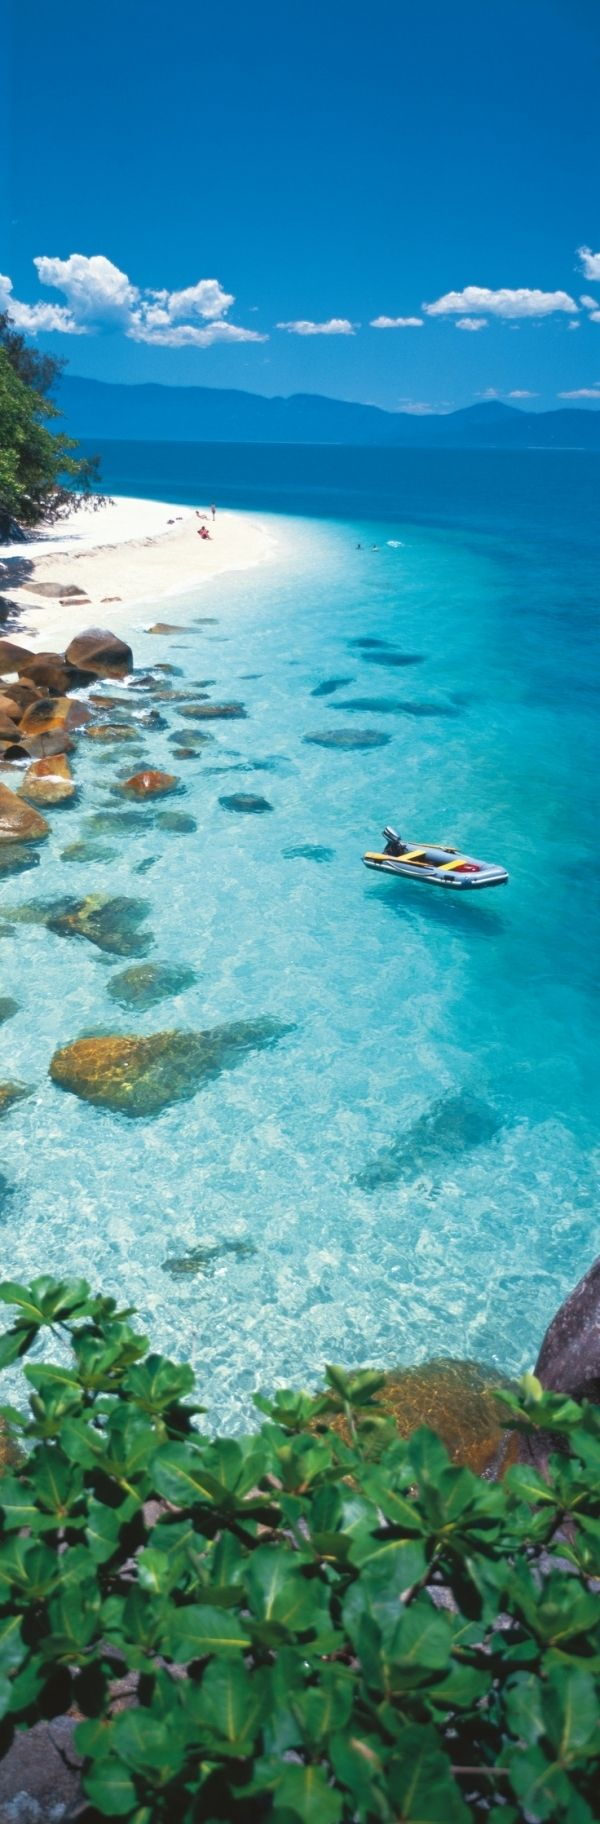 Repin! 22 Views of Tropical Islands That You'll Never Forget ... → #Travel #beach #wanderlust